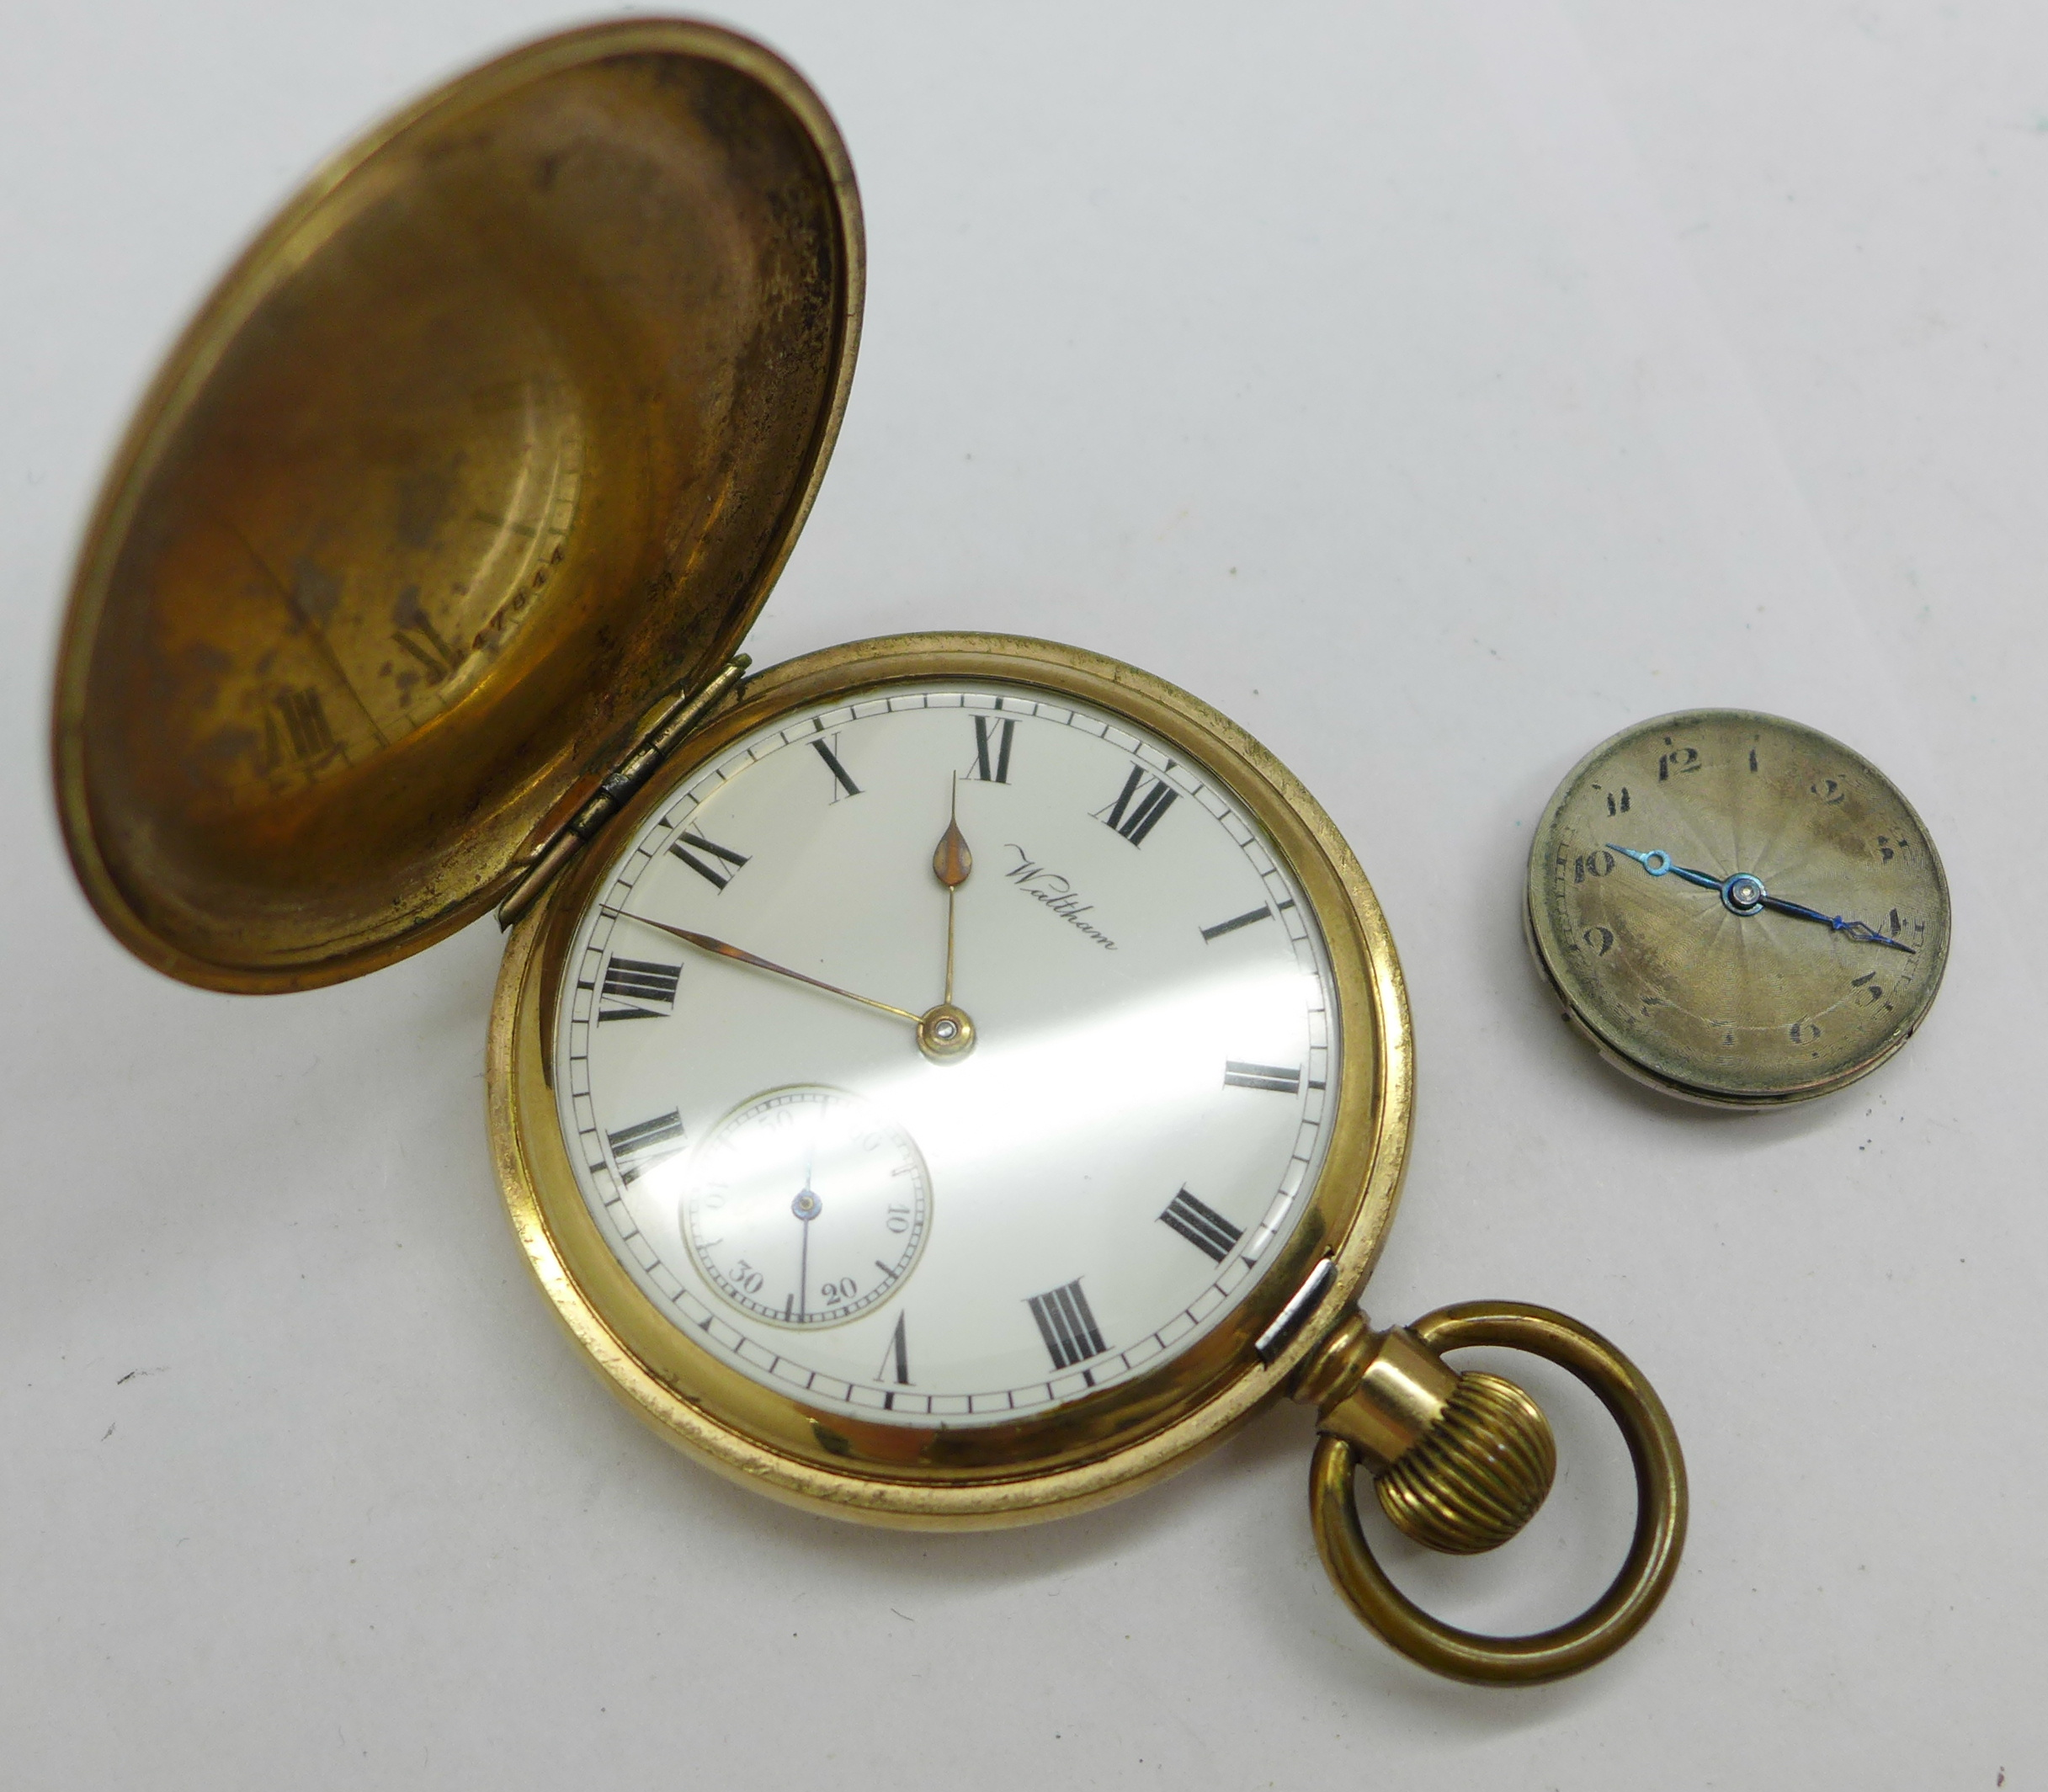 A Rolex wristwatch movement, 23mm, and a Waltham Giant gold plated full hunter pocket watch - Image 2 of 6